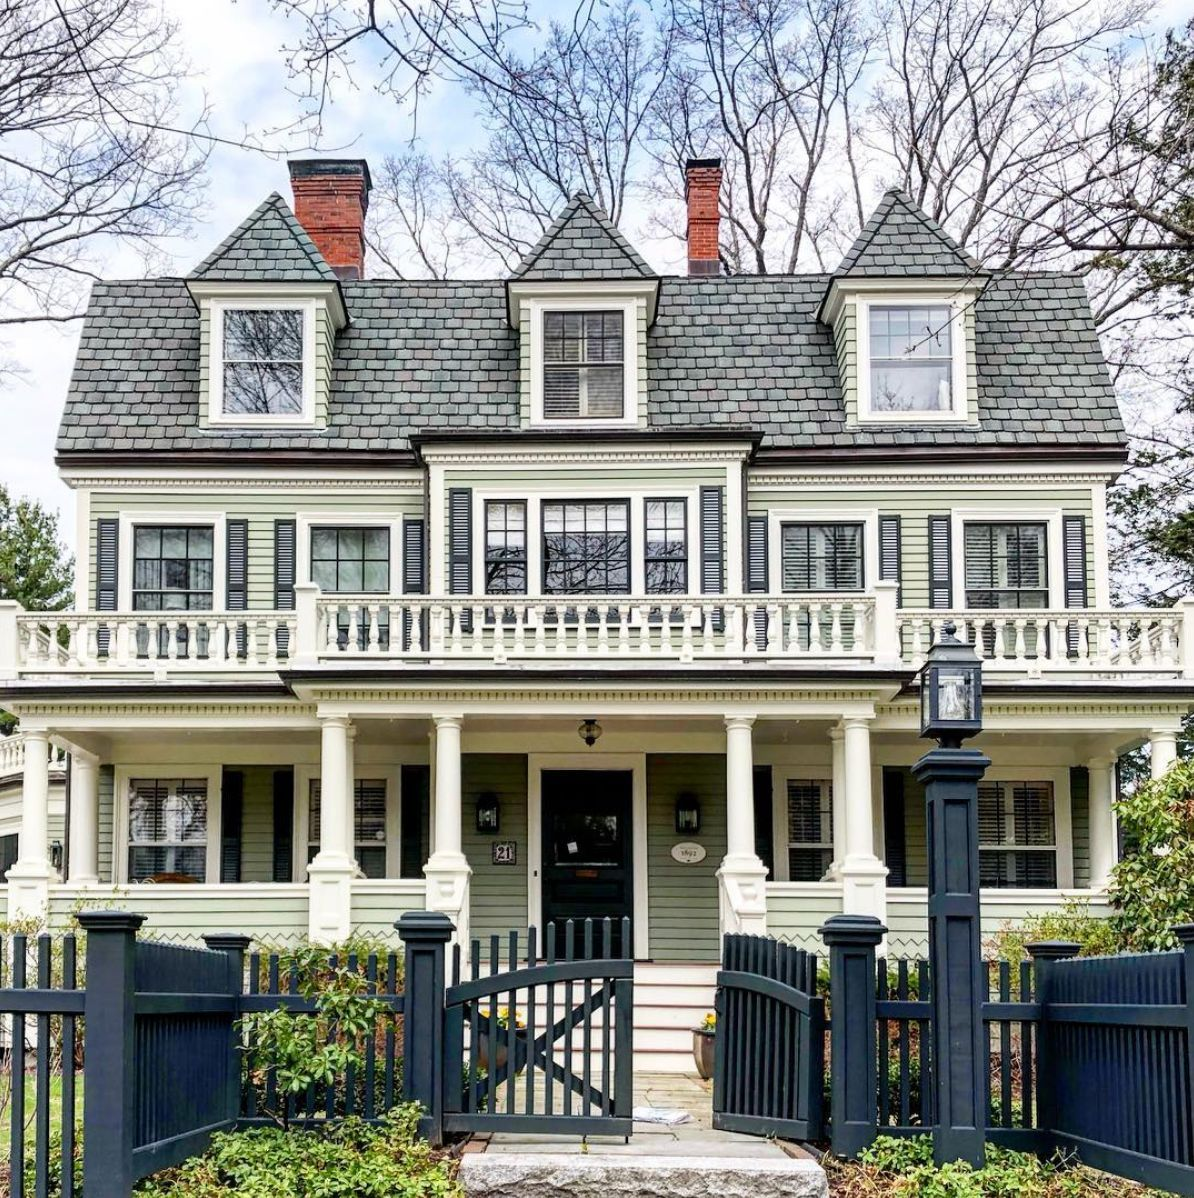 The 10 Architectural Styles At The Top Of Home Design Wishlists House Architecture Design Dream House Exterior Architecture